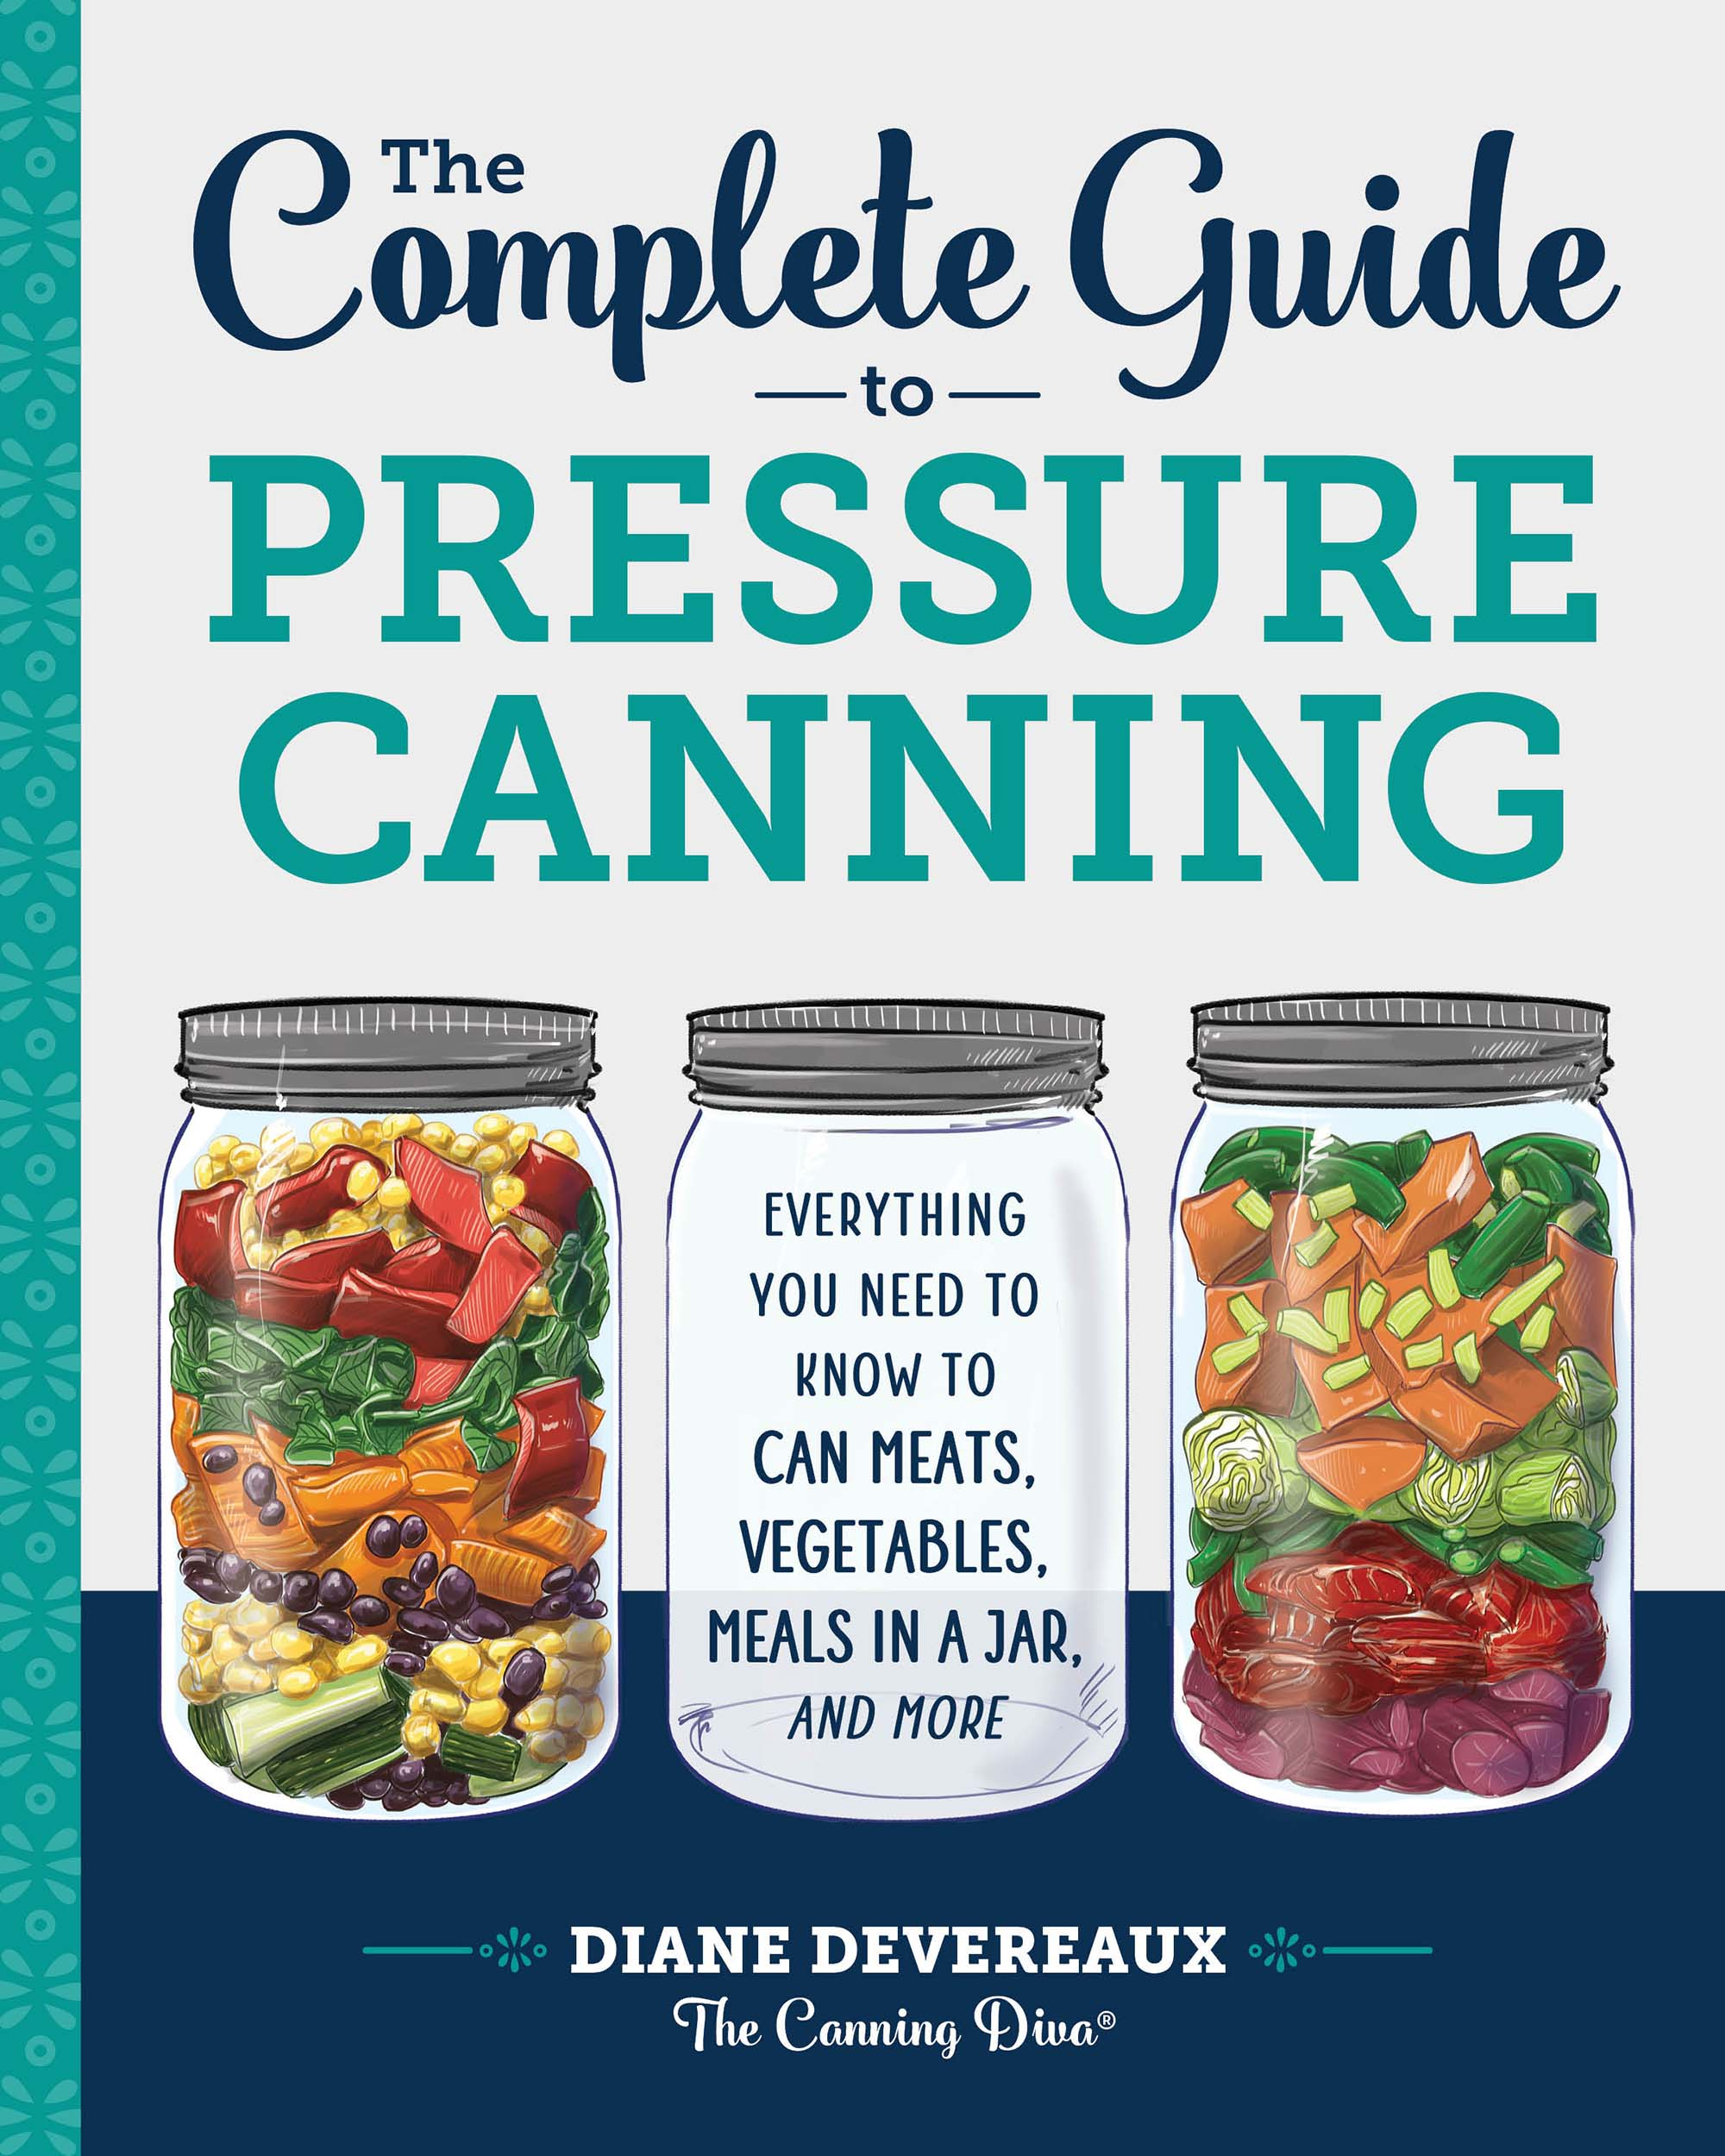 The Complete Guide to Pressure Canning Cover - AppleAmazon